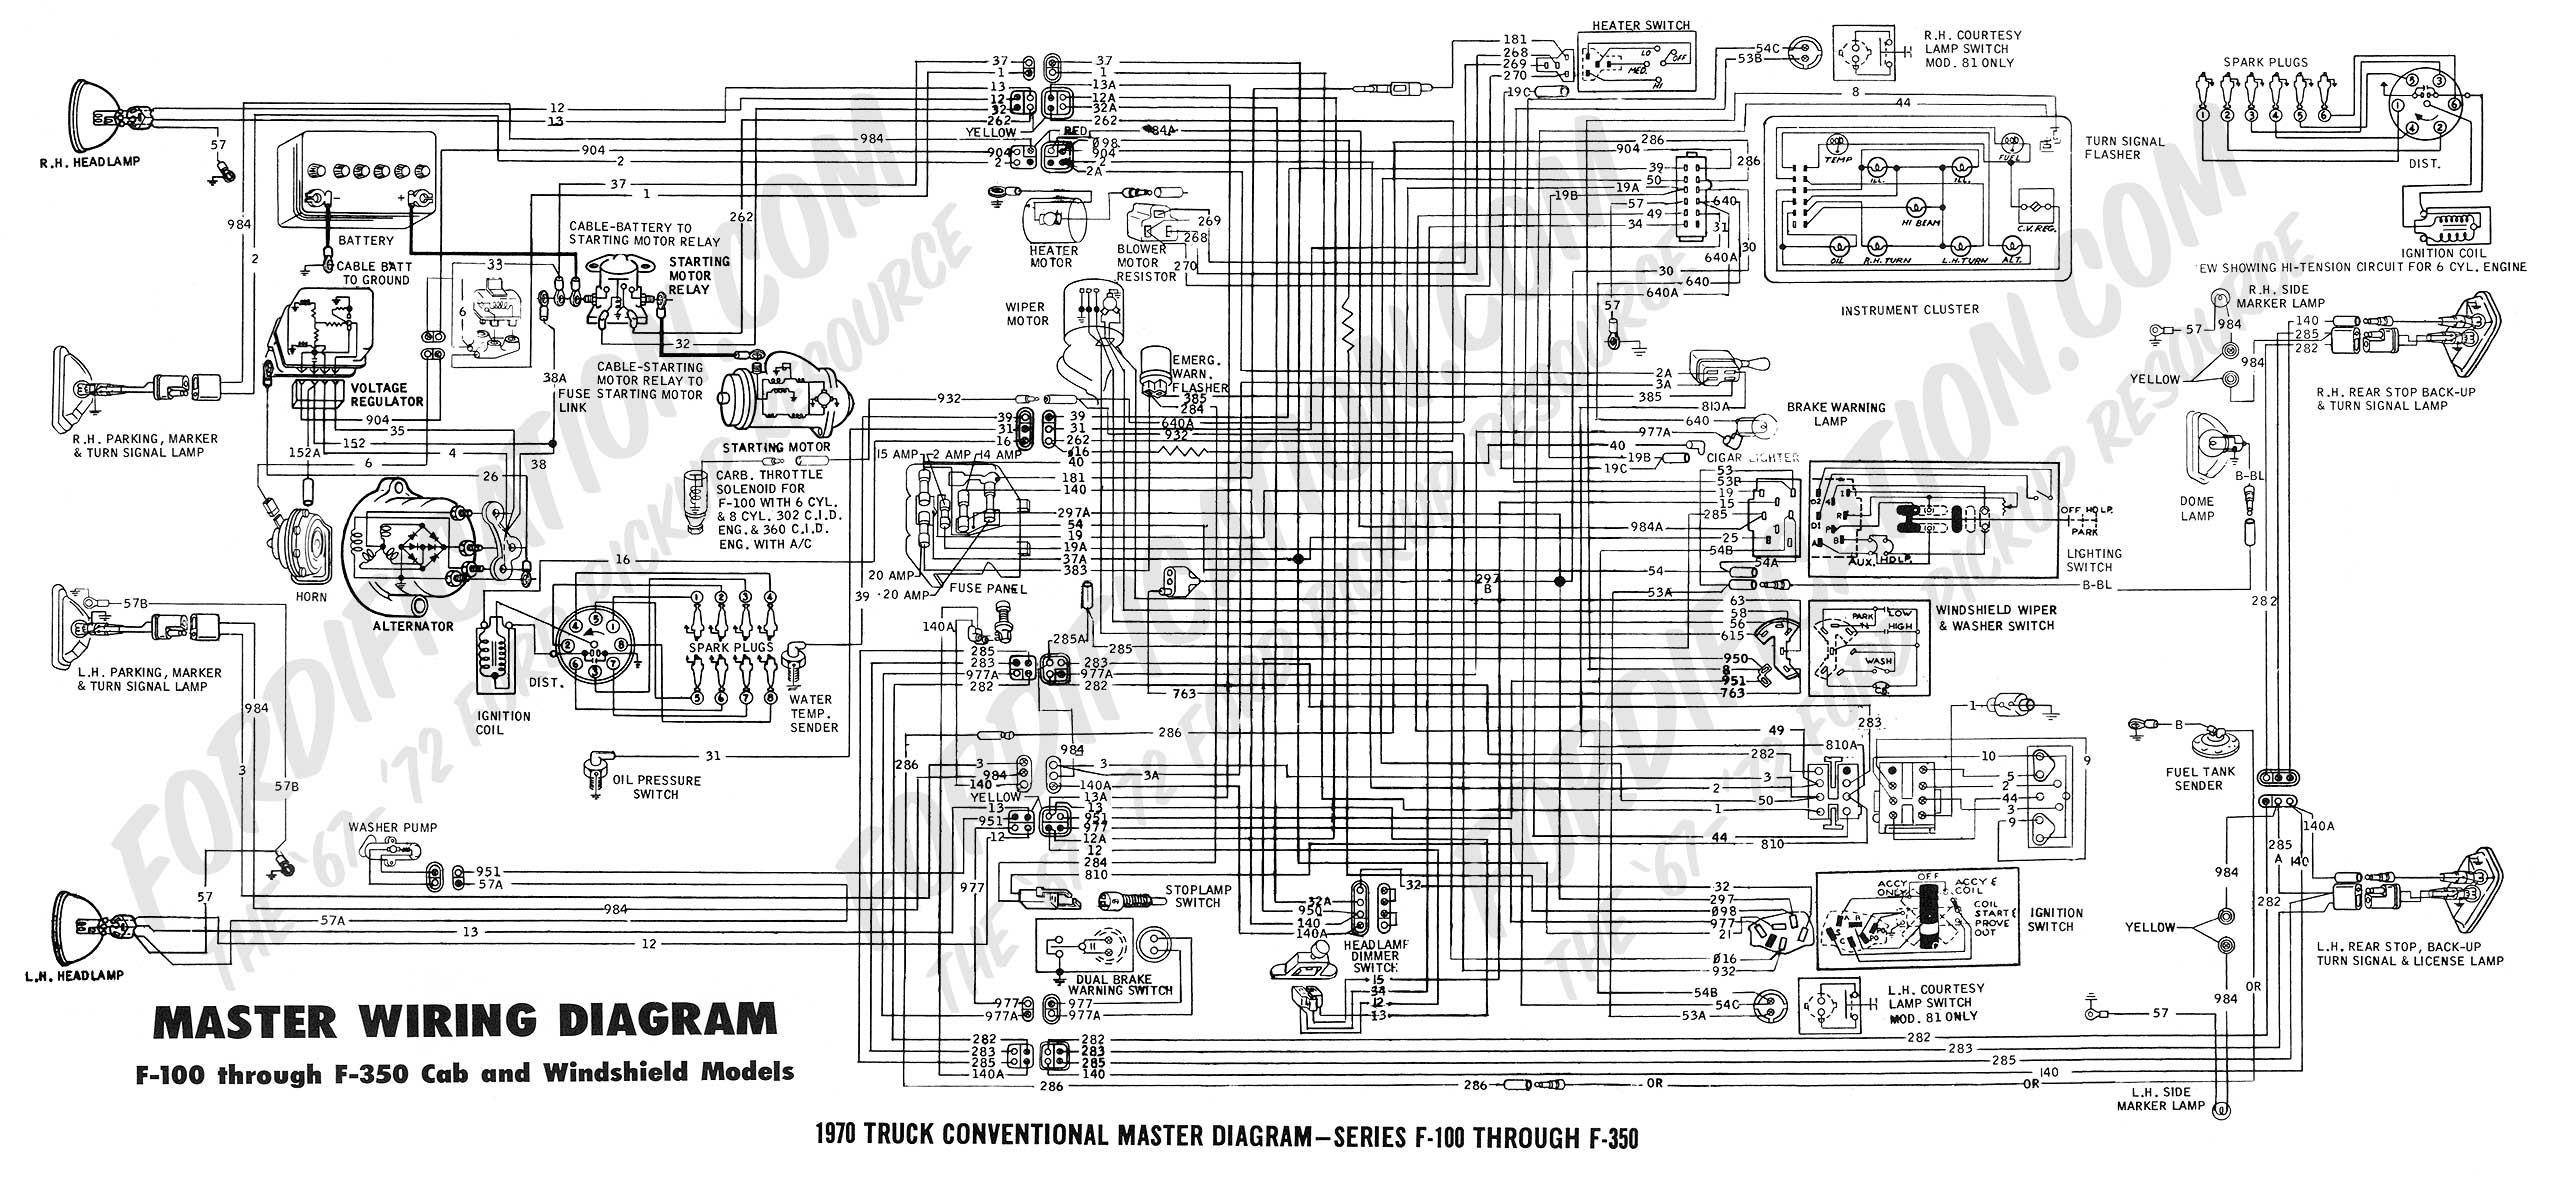 ford ranger wiring diagram wiring diagrams and schematics 2002 ford explorer radio wiring diagram